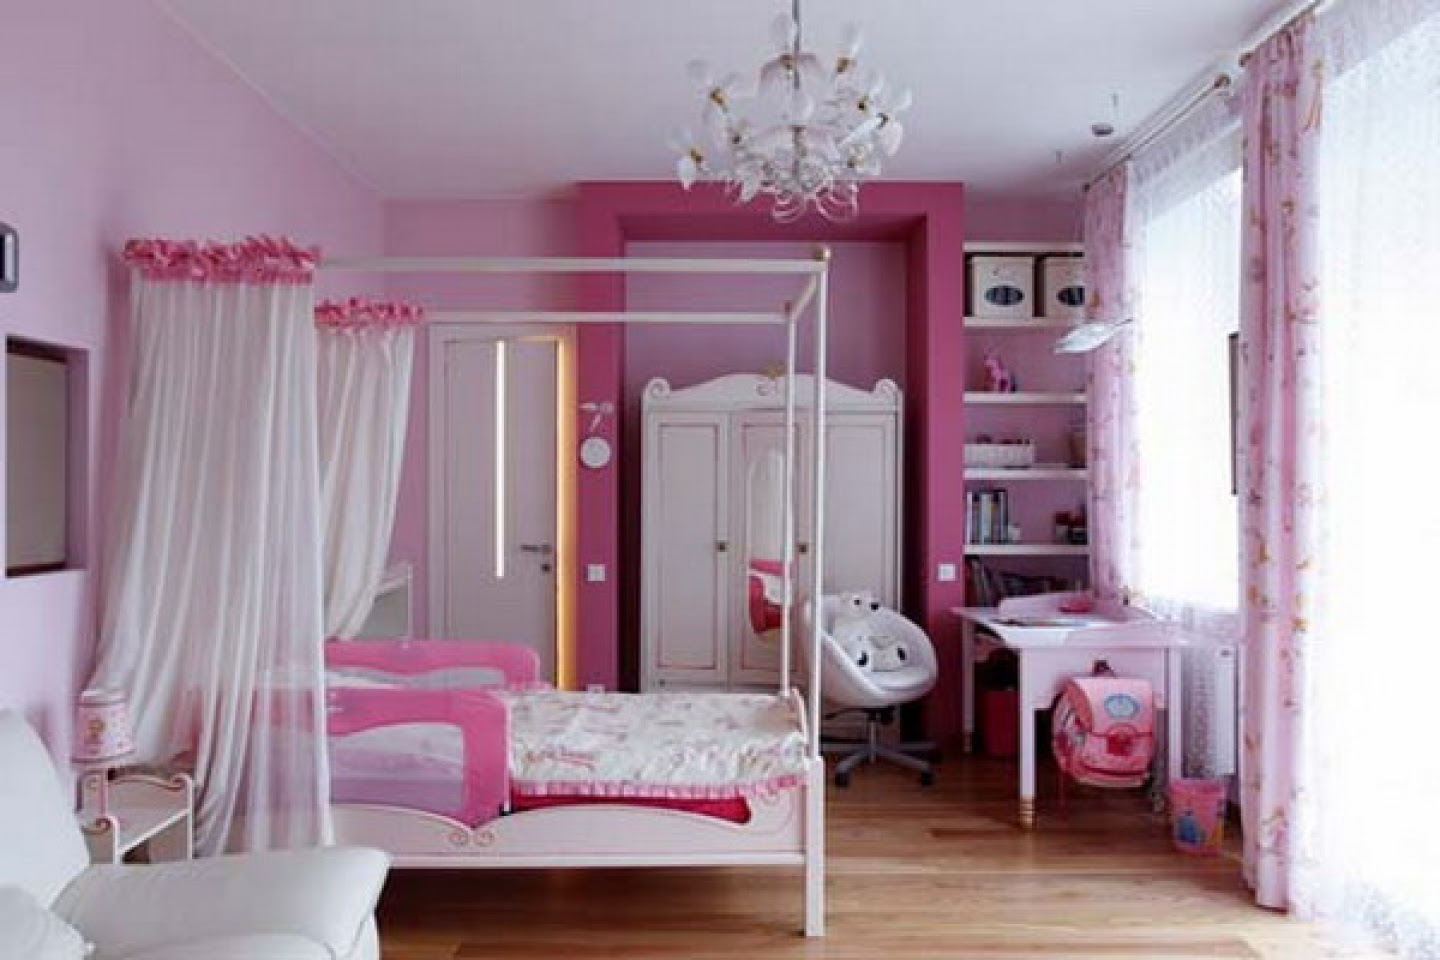 Bedroom Bedroom Design Ideas For Teenage Girl Excellent On Pertaining To Kids Bed Rooms Beautiful Princess That Are 24 Bedroom Design Ideas For Teenage Girl Exquisite On Black And White Girls Elegant